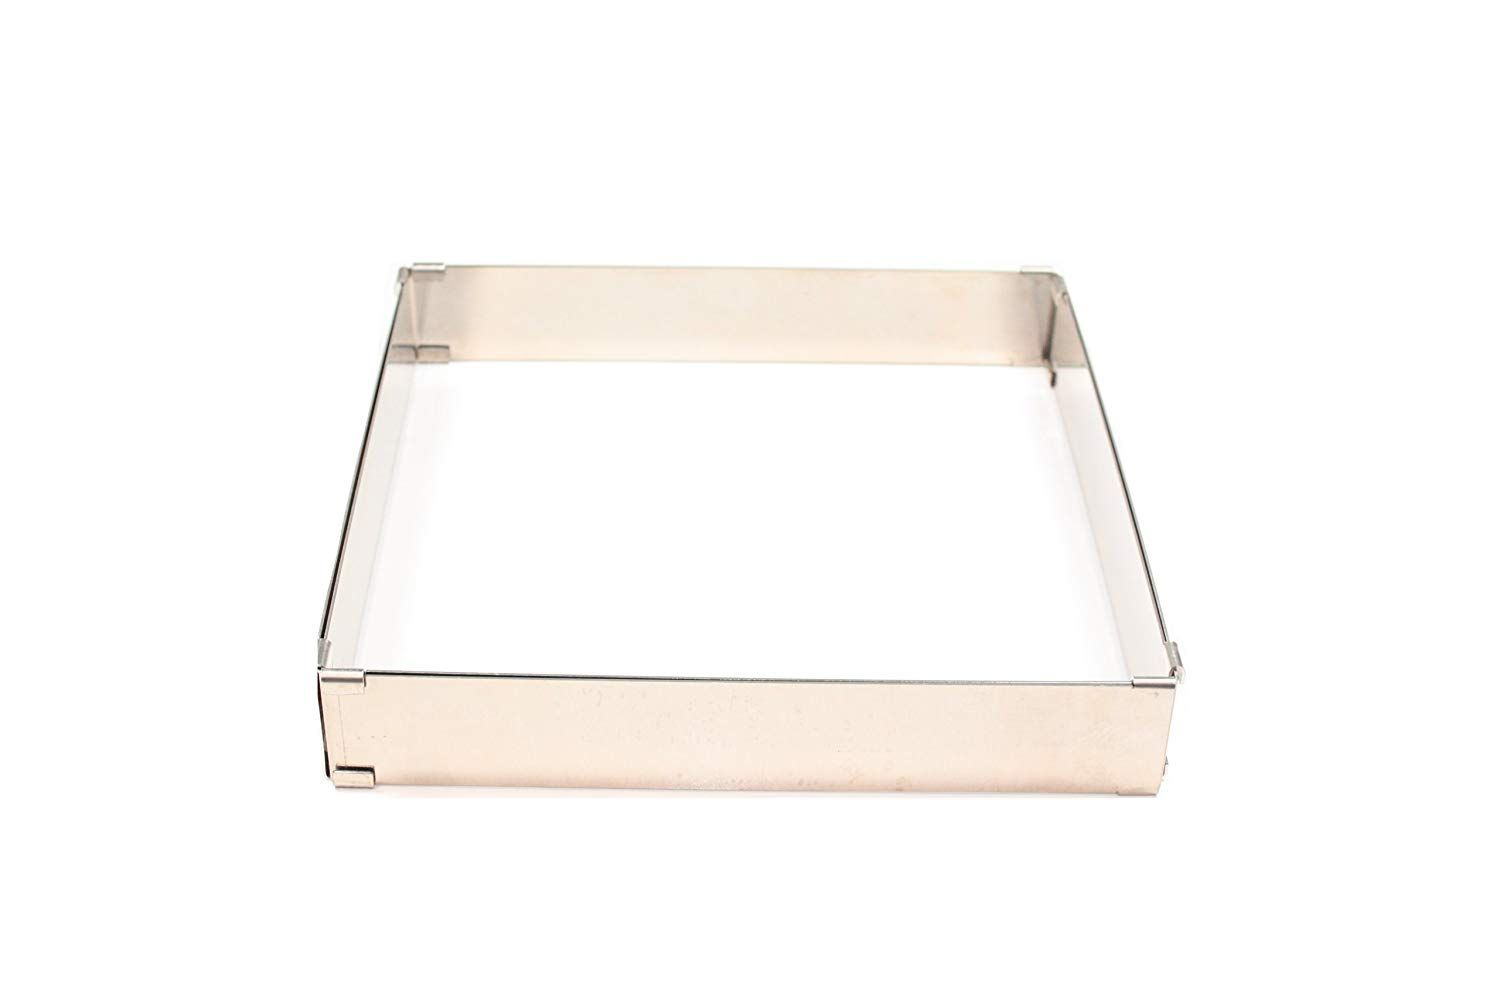 Paderno World Cuisine Adjustable Square Frame Extender From 11 7 8 Inch Square To 22 1 2 Inch Square Find Out More About The Great Pr Paderno World Cuisine World Cuisine Cake Pans